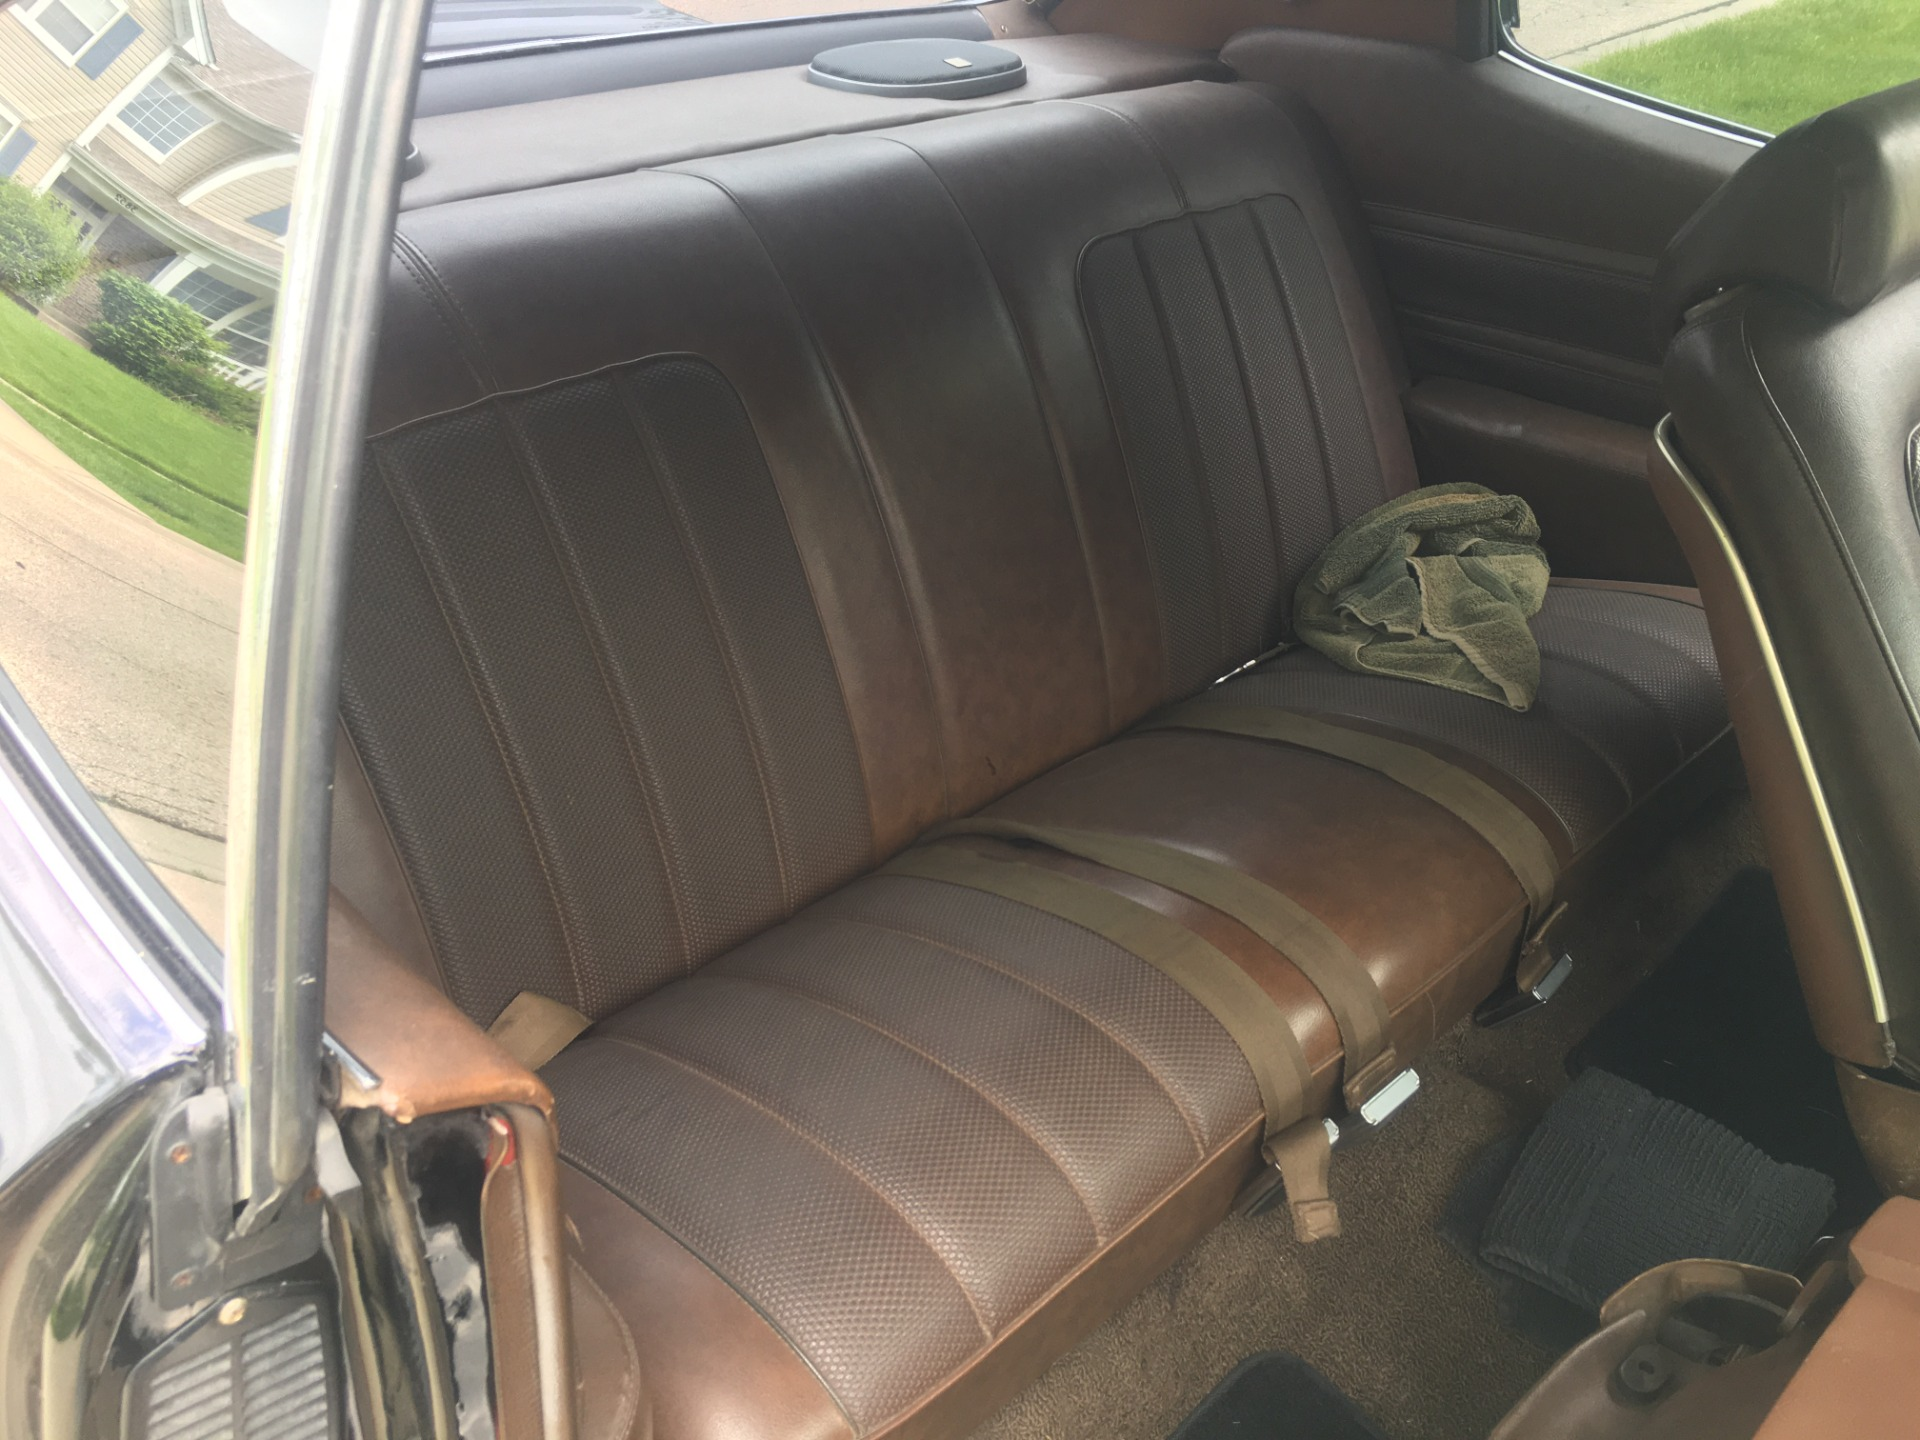 Used 1970 Buick GS - 455 ENGINE - GREAT DRIVER - CLEAN BODY - | Mundelein, IL